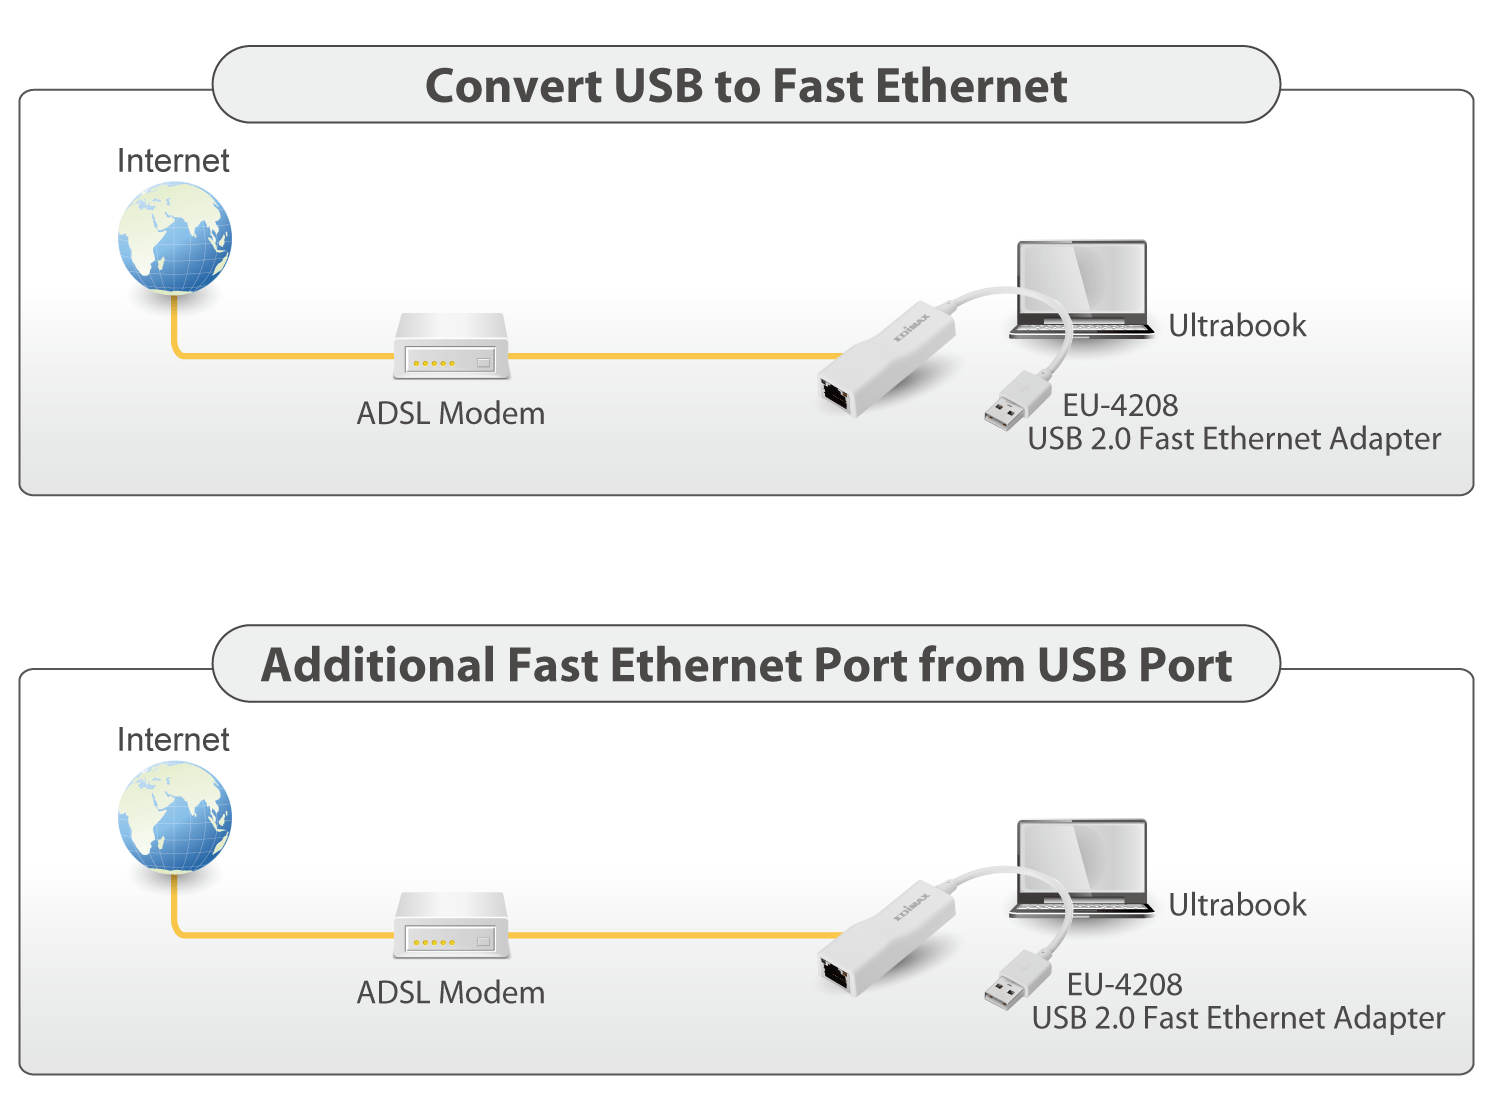 hight resolution of edimax usb 2 0 fast ethernet adapter eu 4208 usb adapter applicaiton diagram png